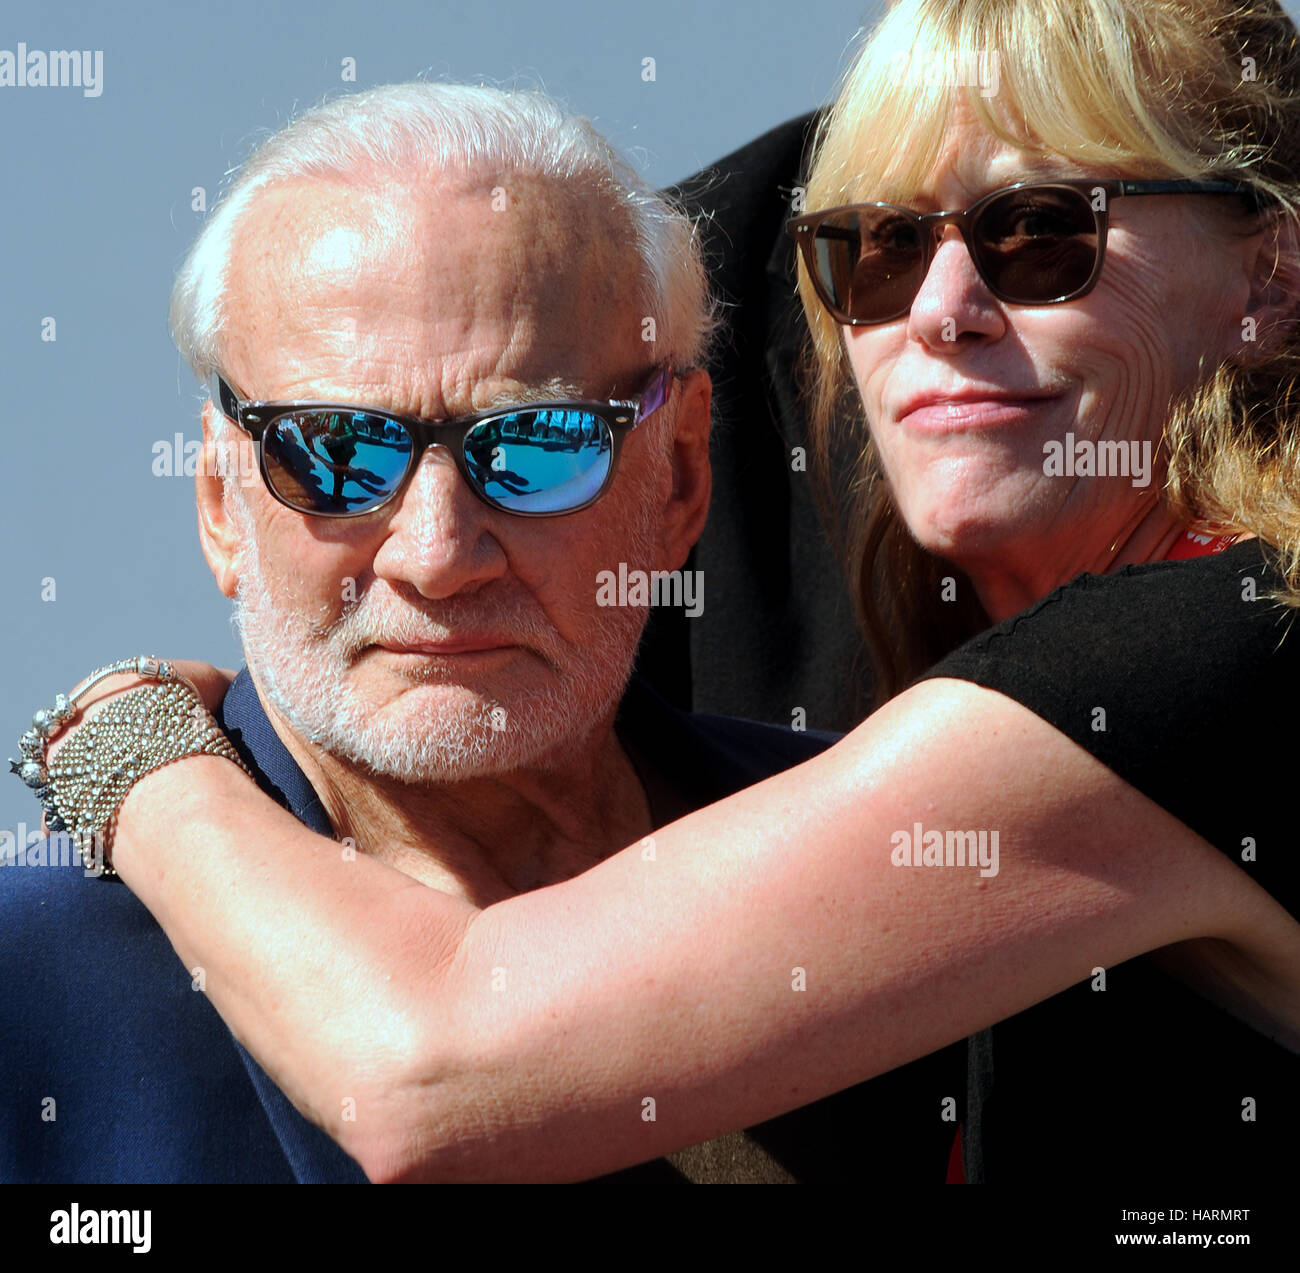 November 11, 2016 - Titusville, Florida, United States - Former astronaut Buzz Aldrin, accompanied by his daughter, - Stock Image